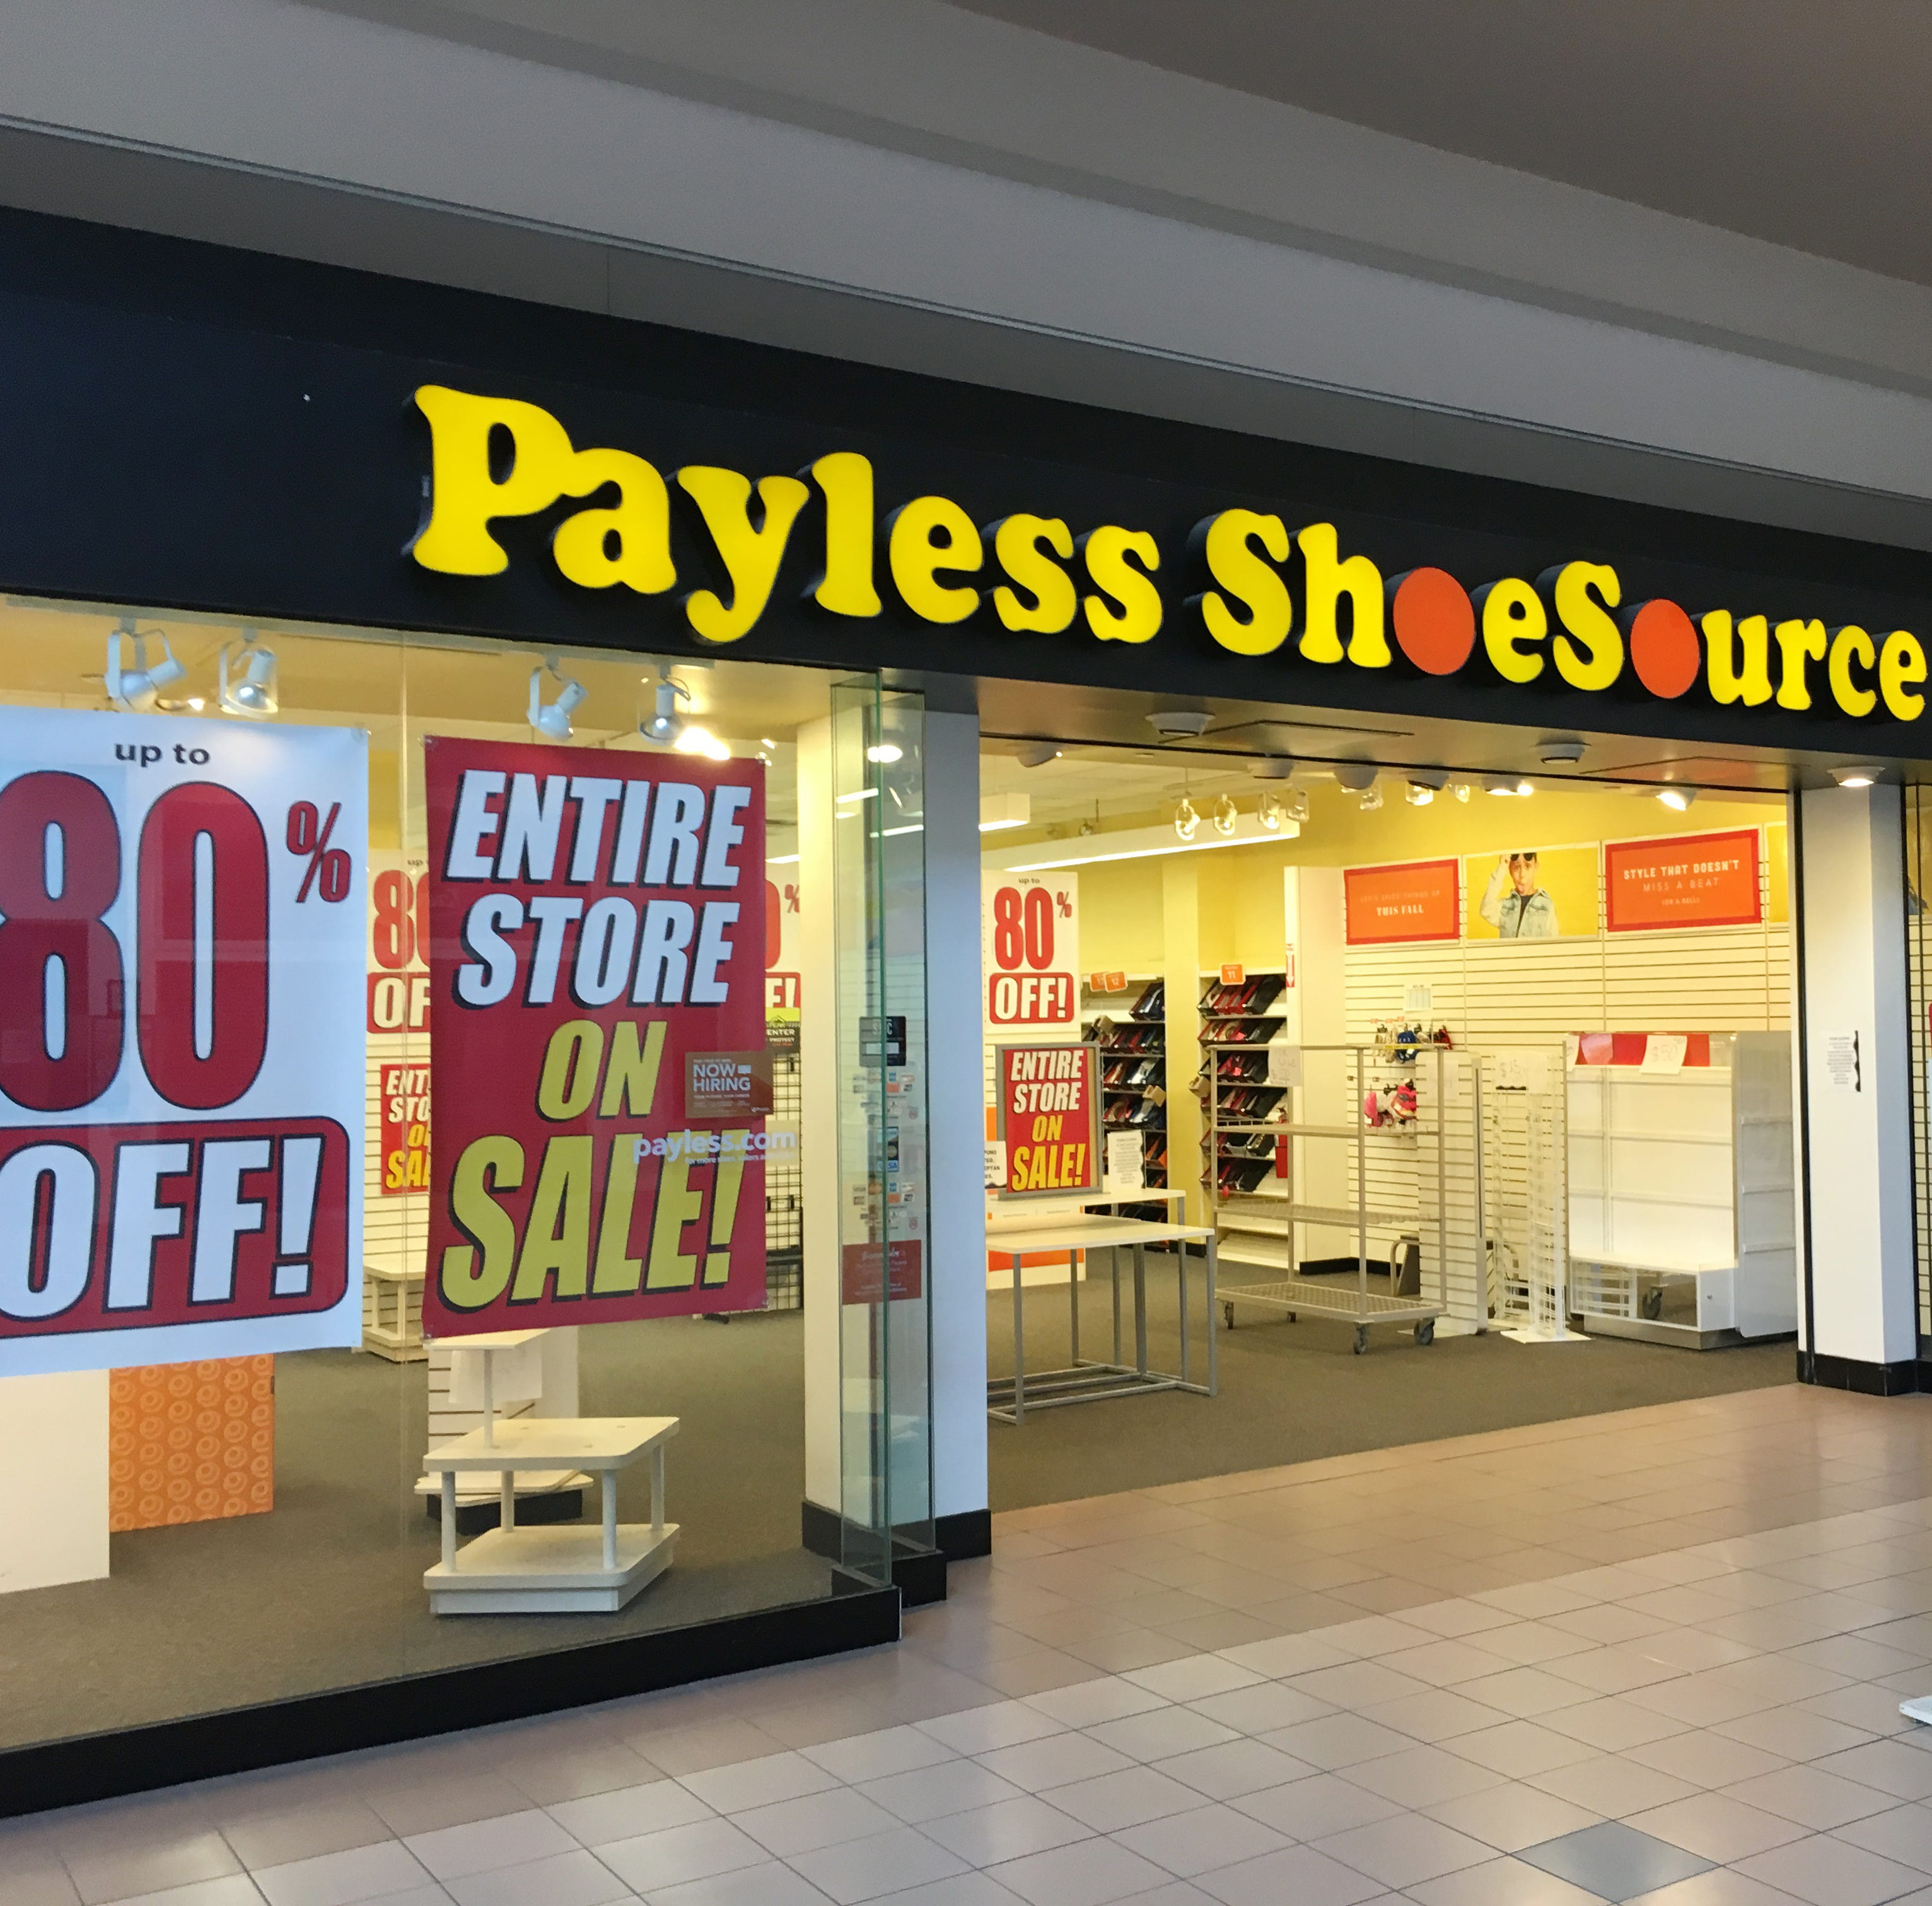 Payless Shoesource to close all of its stores, including at least 25 in Indiana